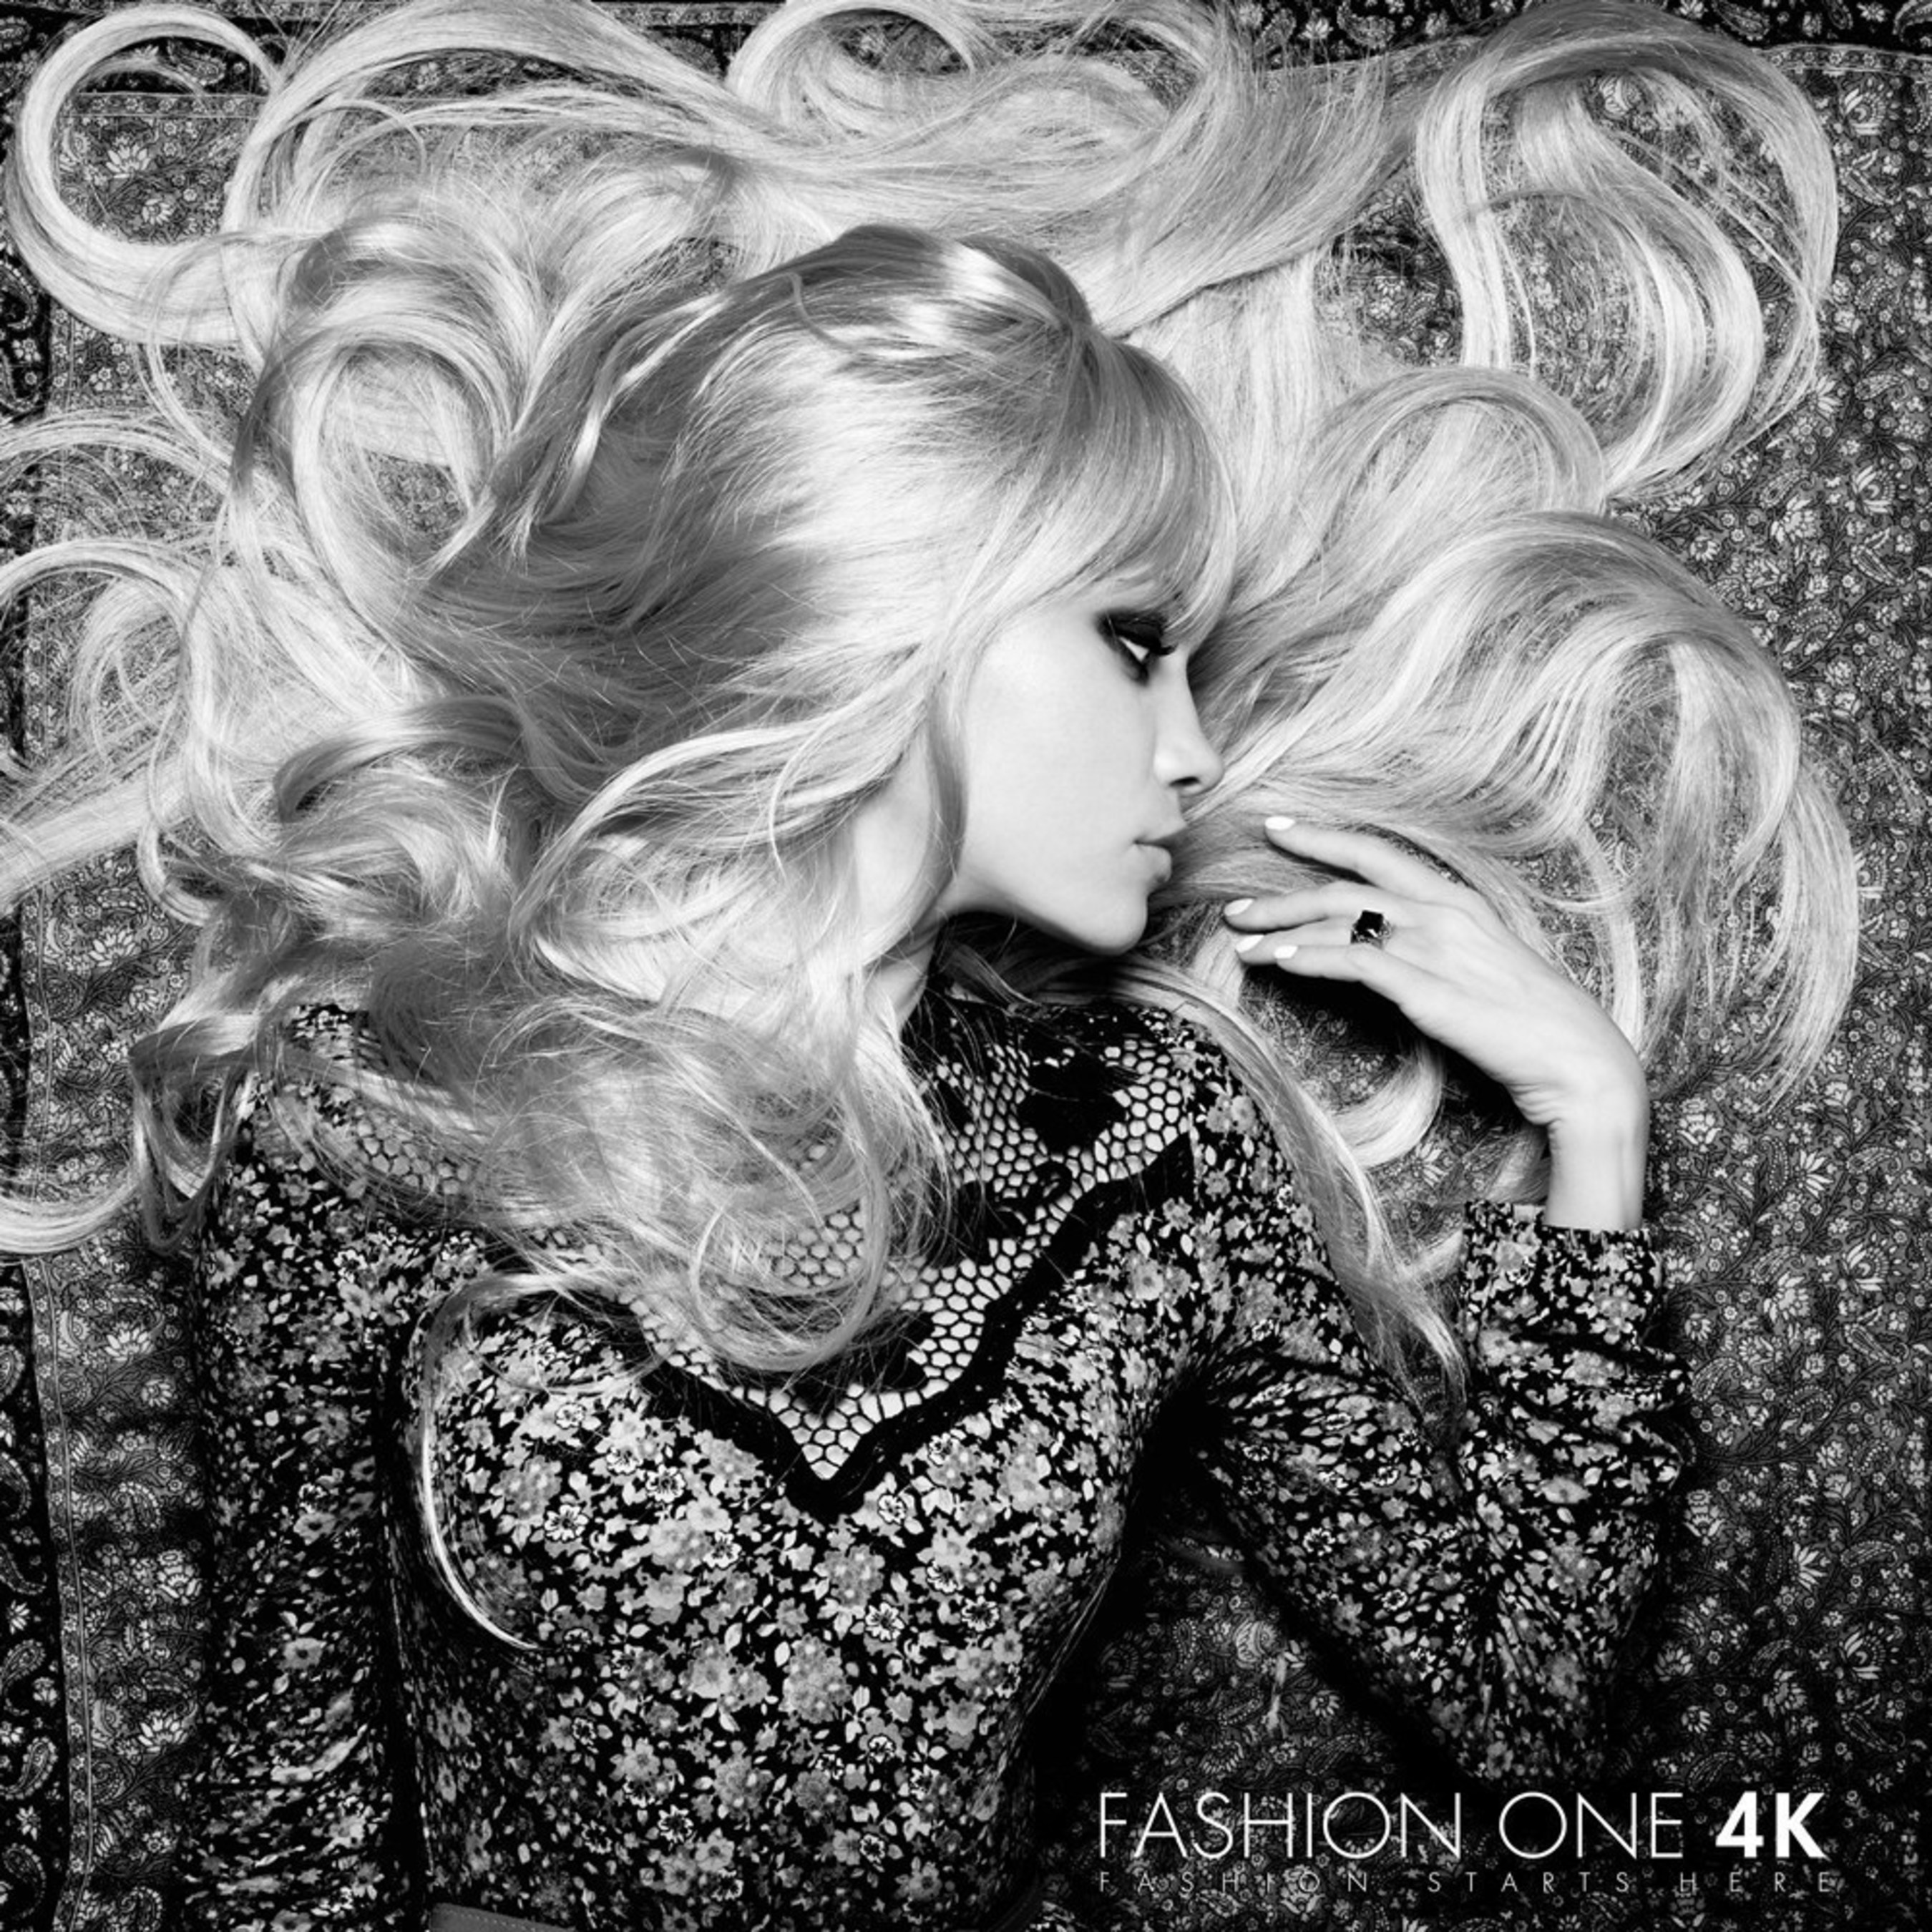 Fashion One launches world's first global UHD channel, Fashion One 4K, on SES satellites